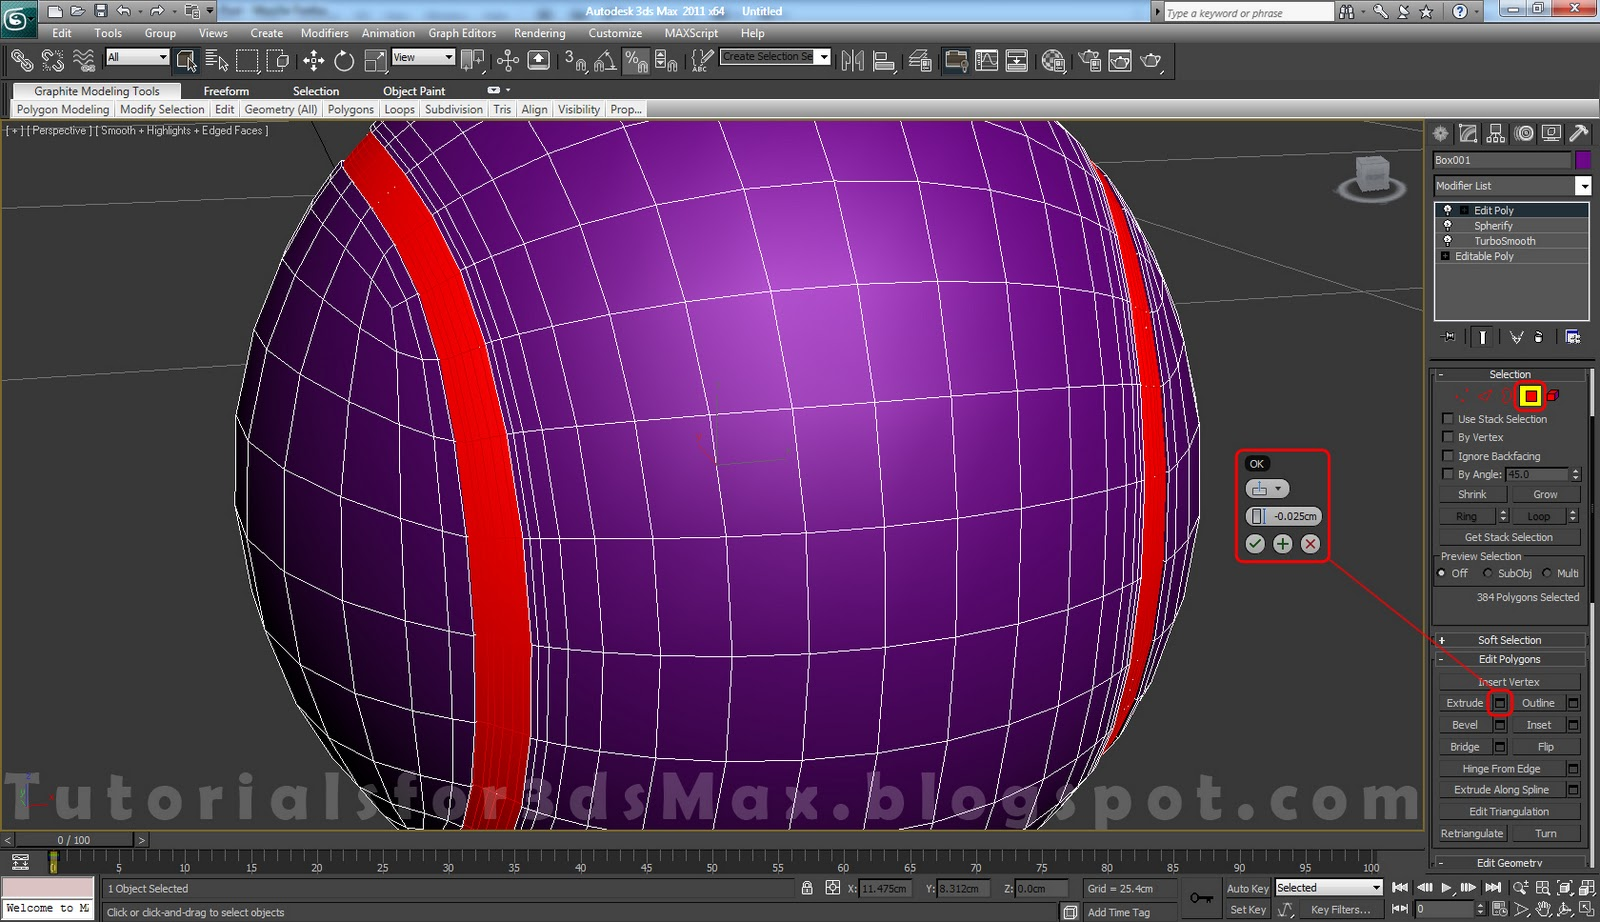 Tennis ball 3ds max modeling tutorial graphics artists for 3ds max step by step tutorials for beginners